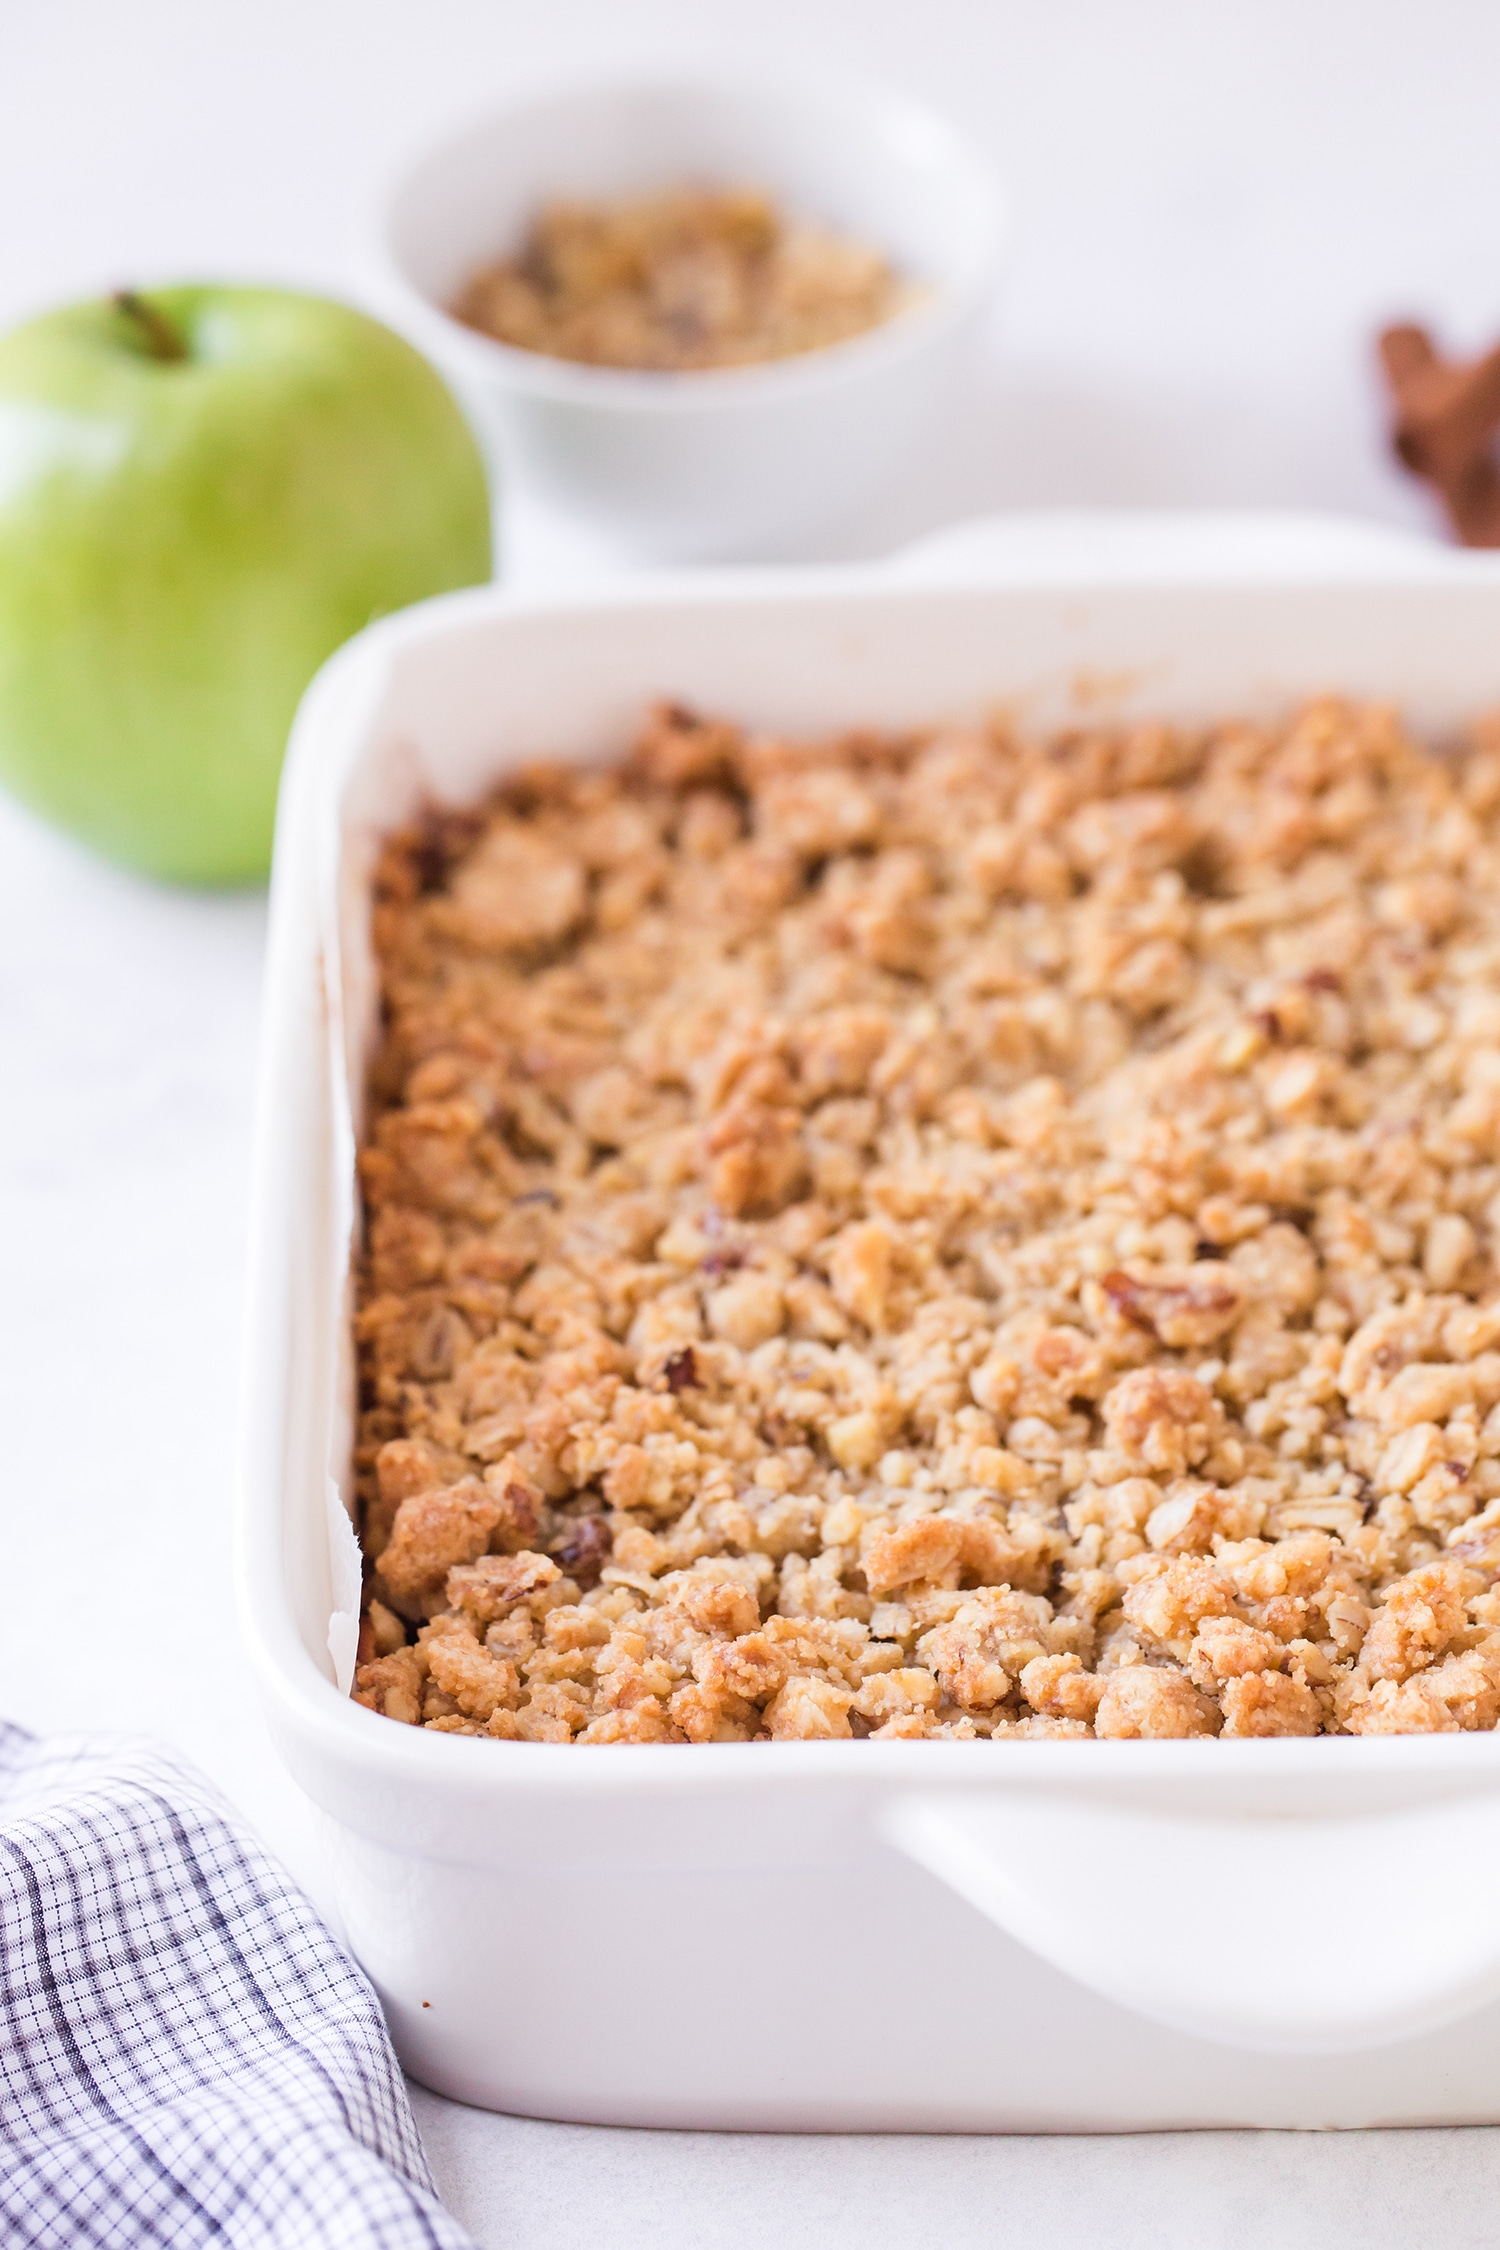 Apple pie bars in white baking dish with green apples in background